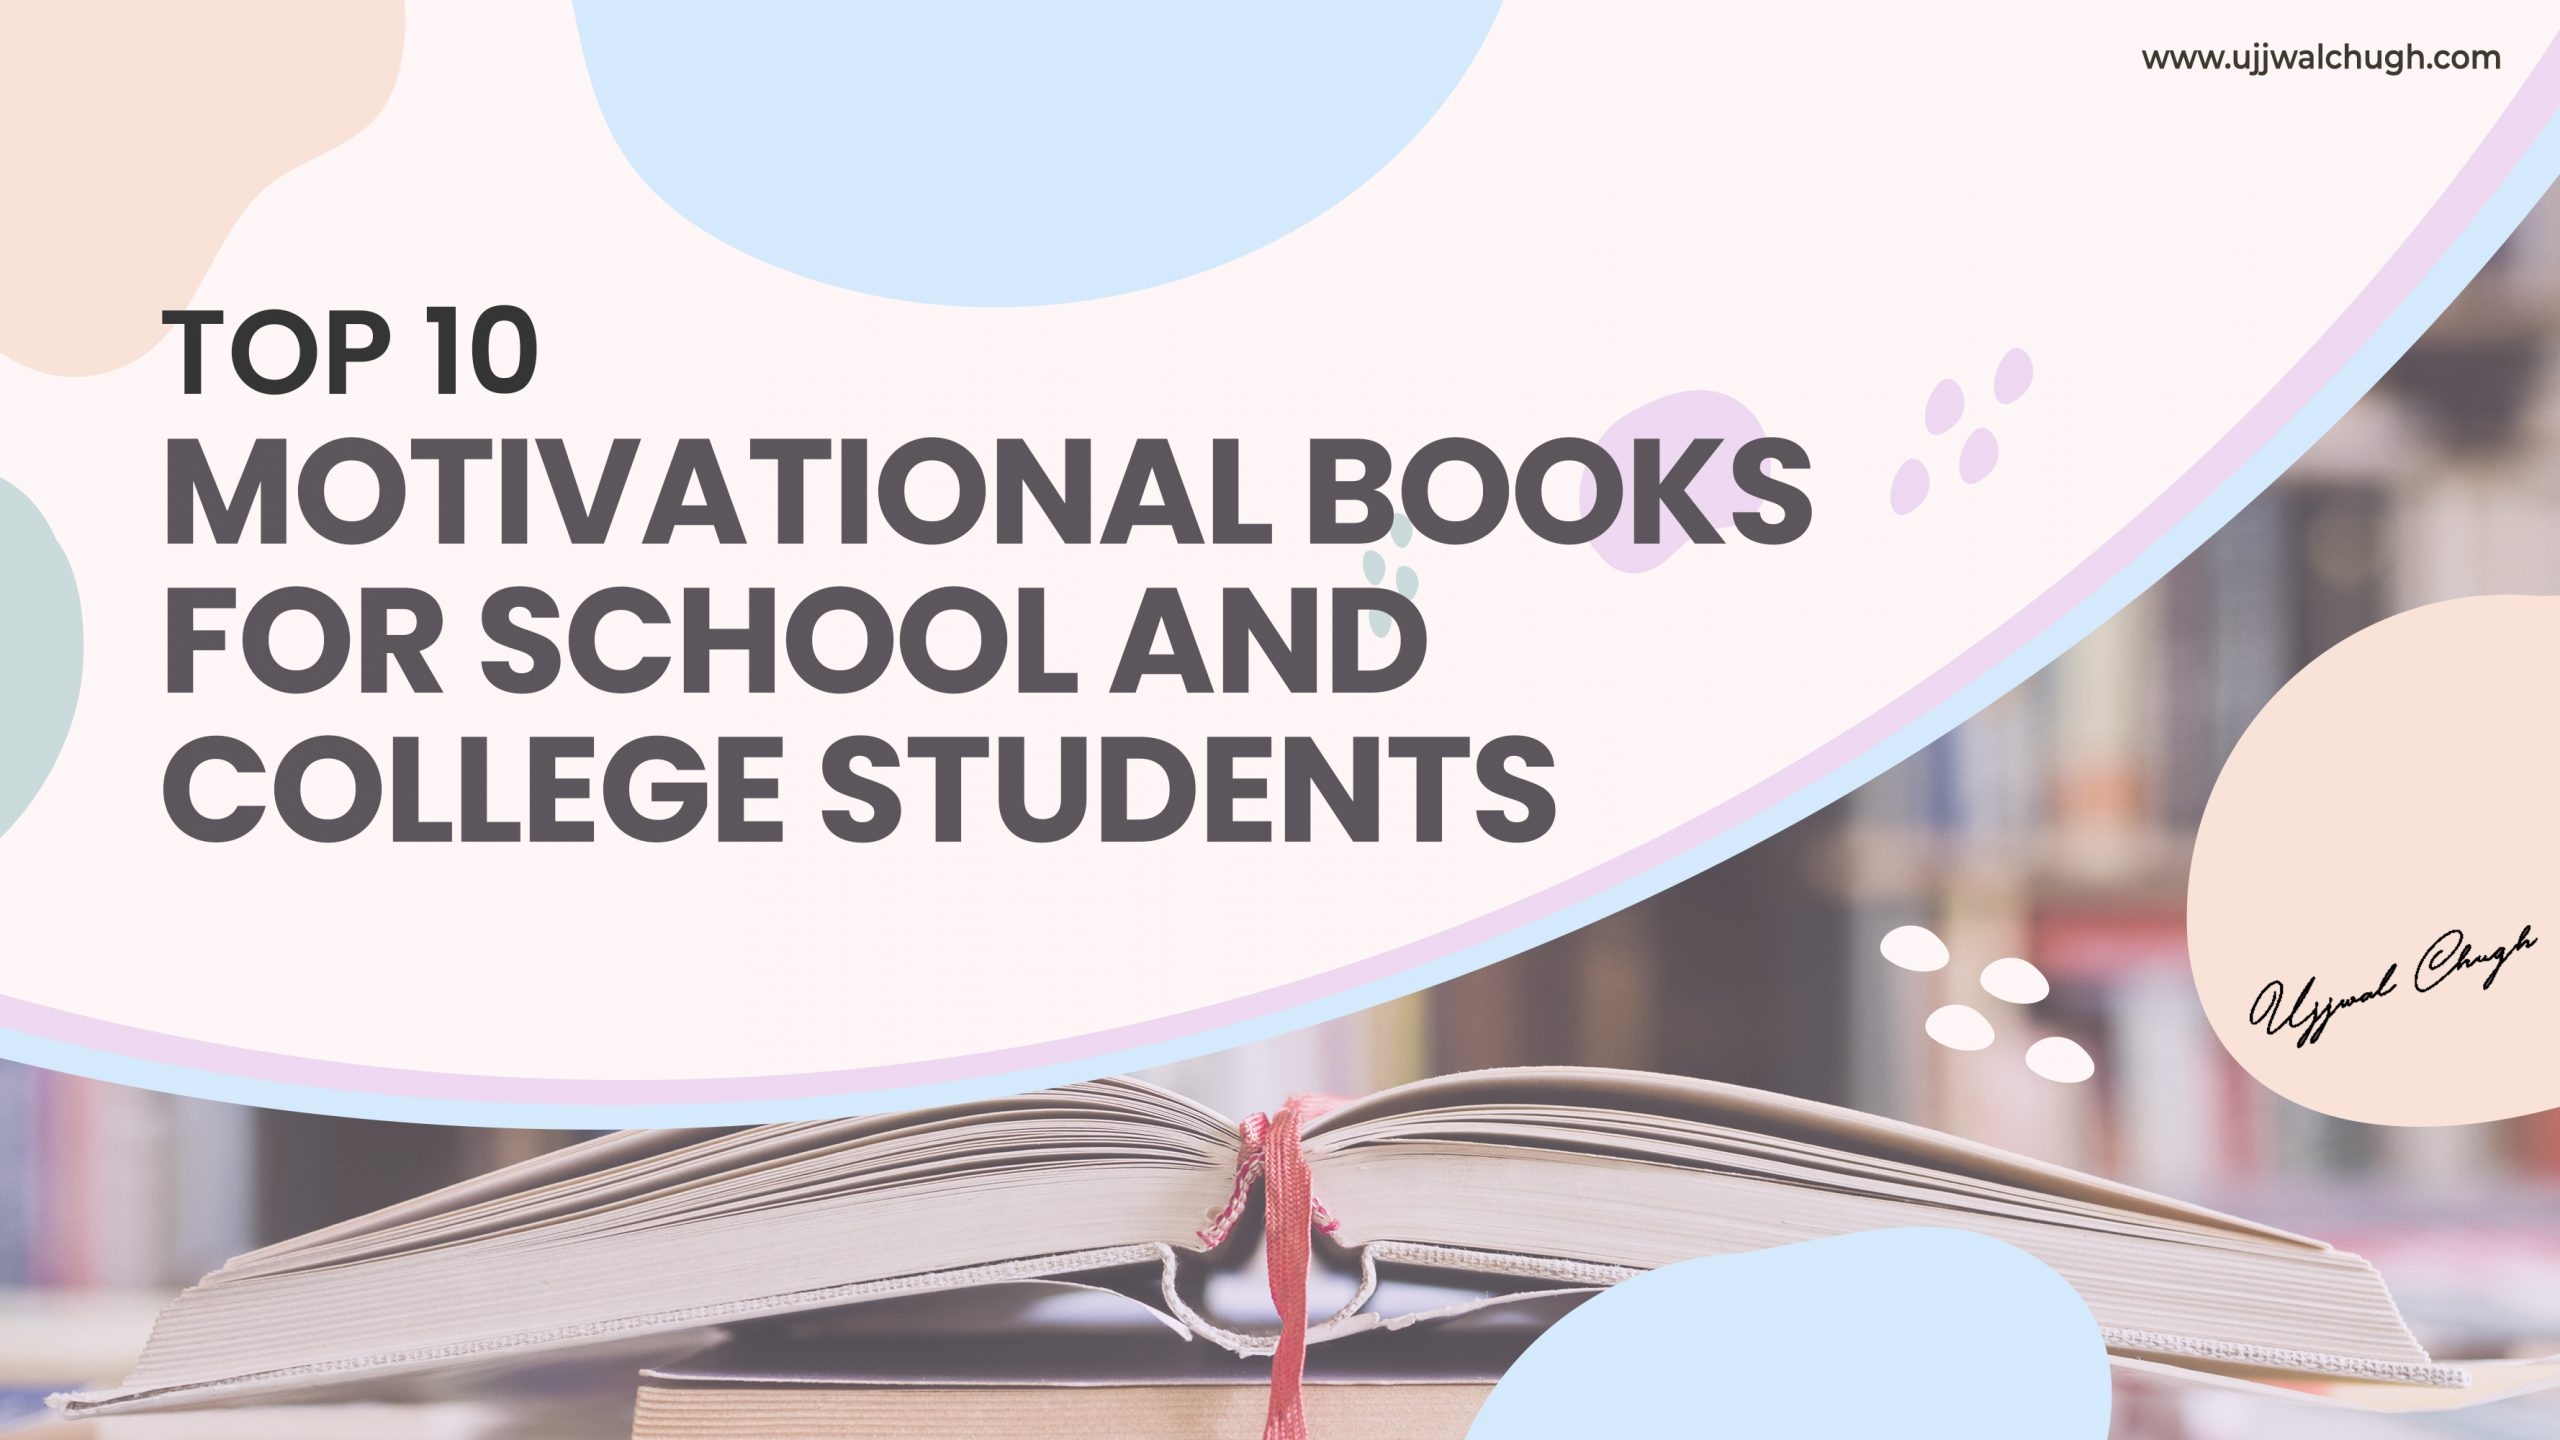 Top 10 Motivational Books For School Students & College Students | Best Inspirational Books For Success